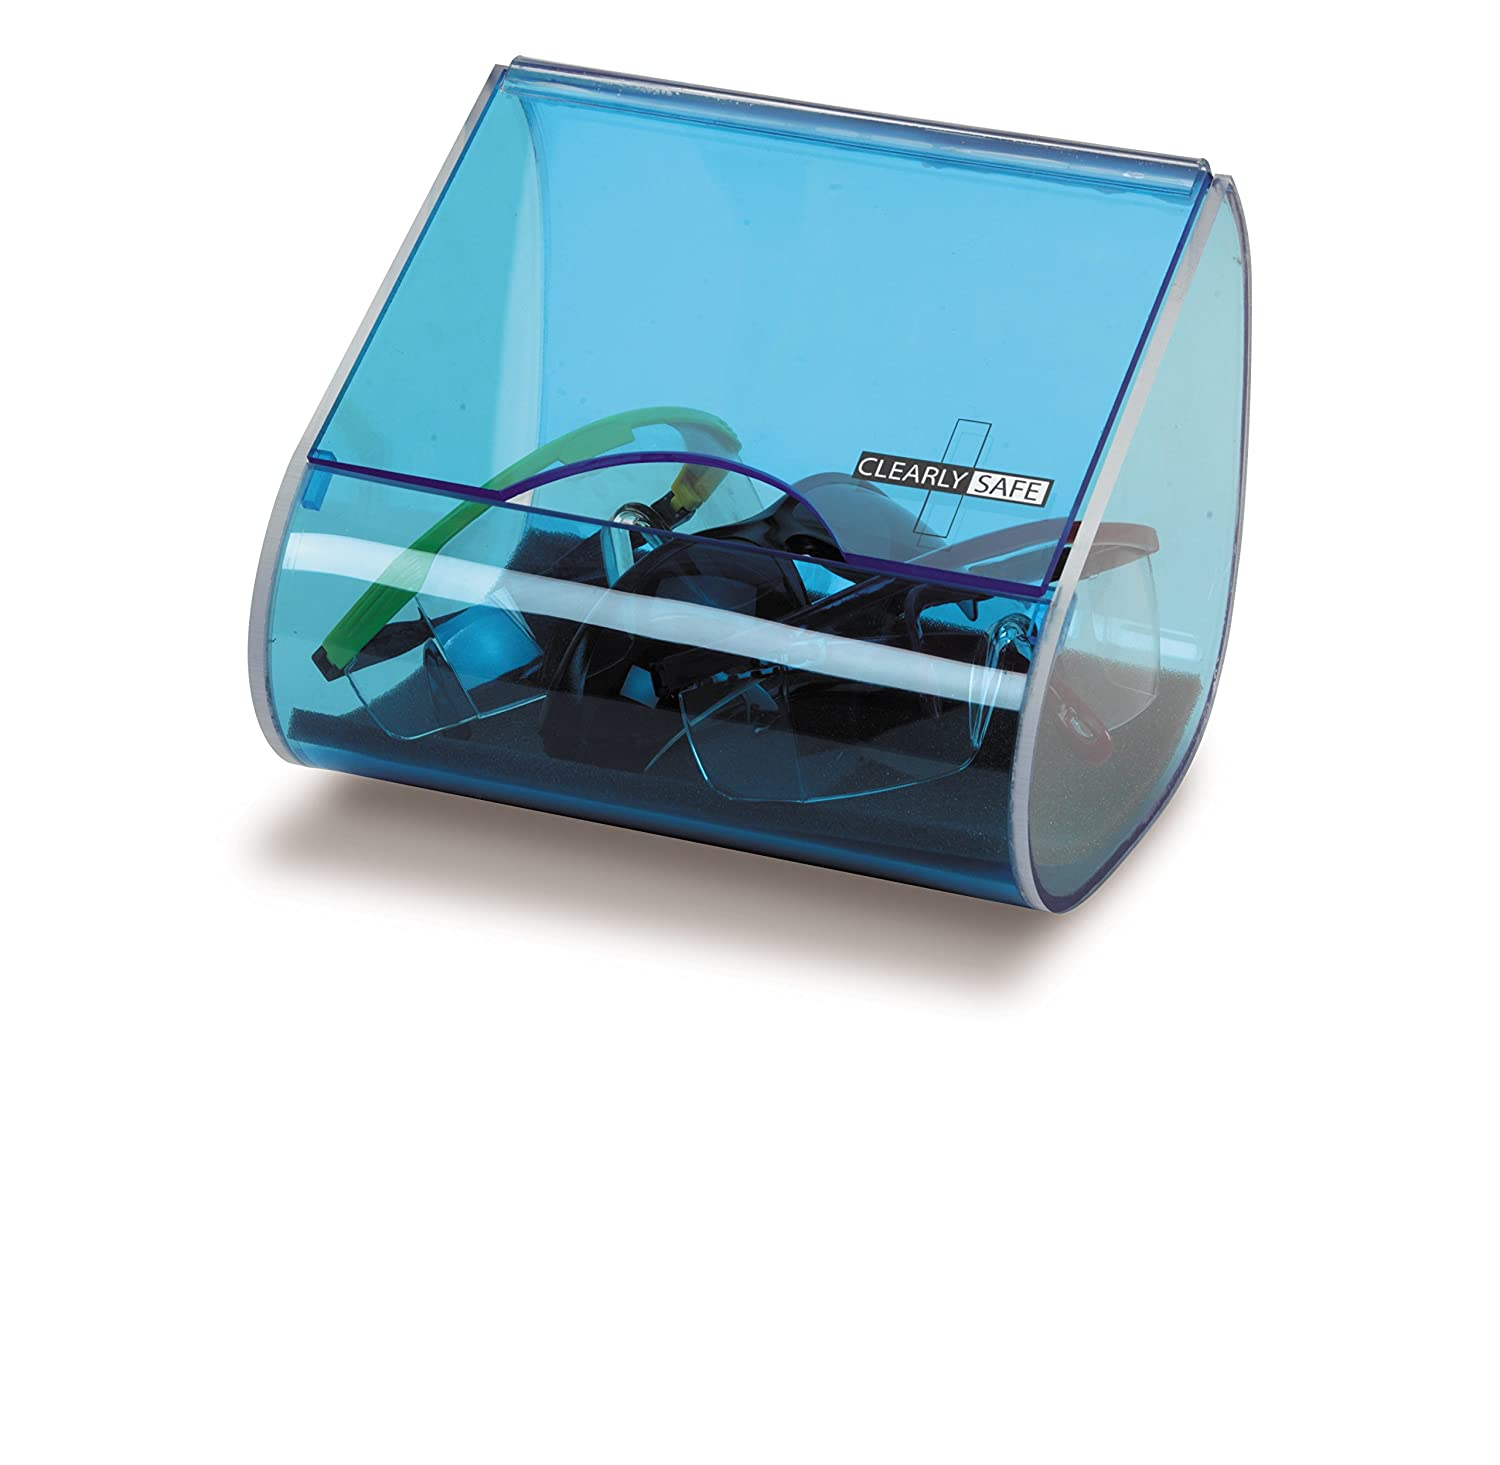 Heathrow Scientific HD1041 Acrylic Clearly Safe Small Safety Glasses Holder, 227 mm Length x 162 mm Width x 156 mm Height, Blue HS1041